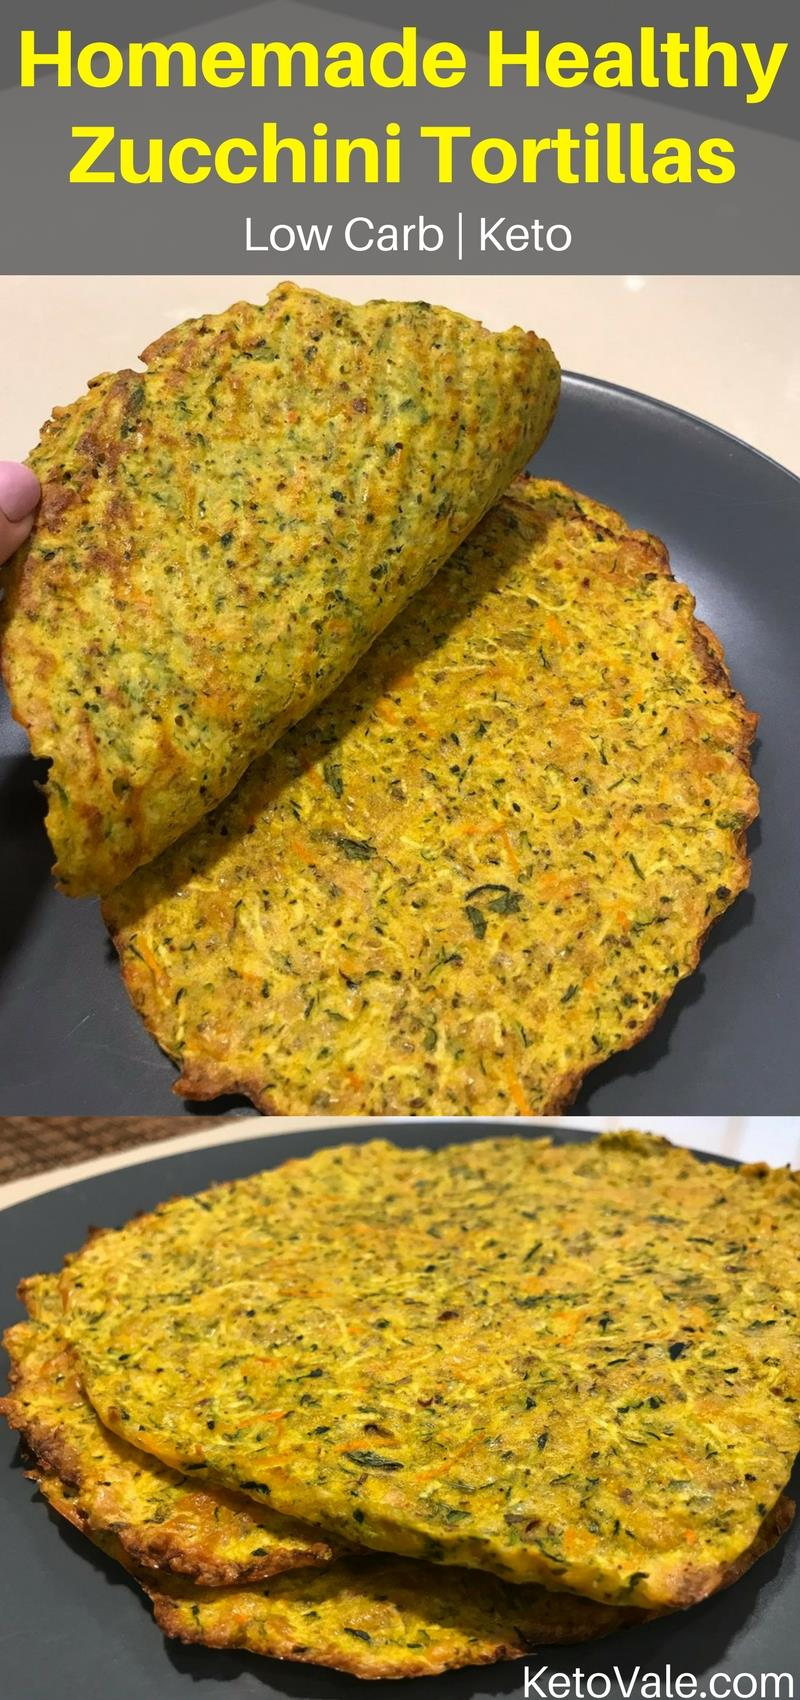 Keto Tex-Mex-Style Zucchini Tortillas Low Carb Recipe